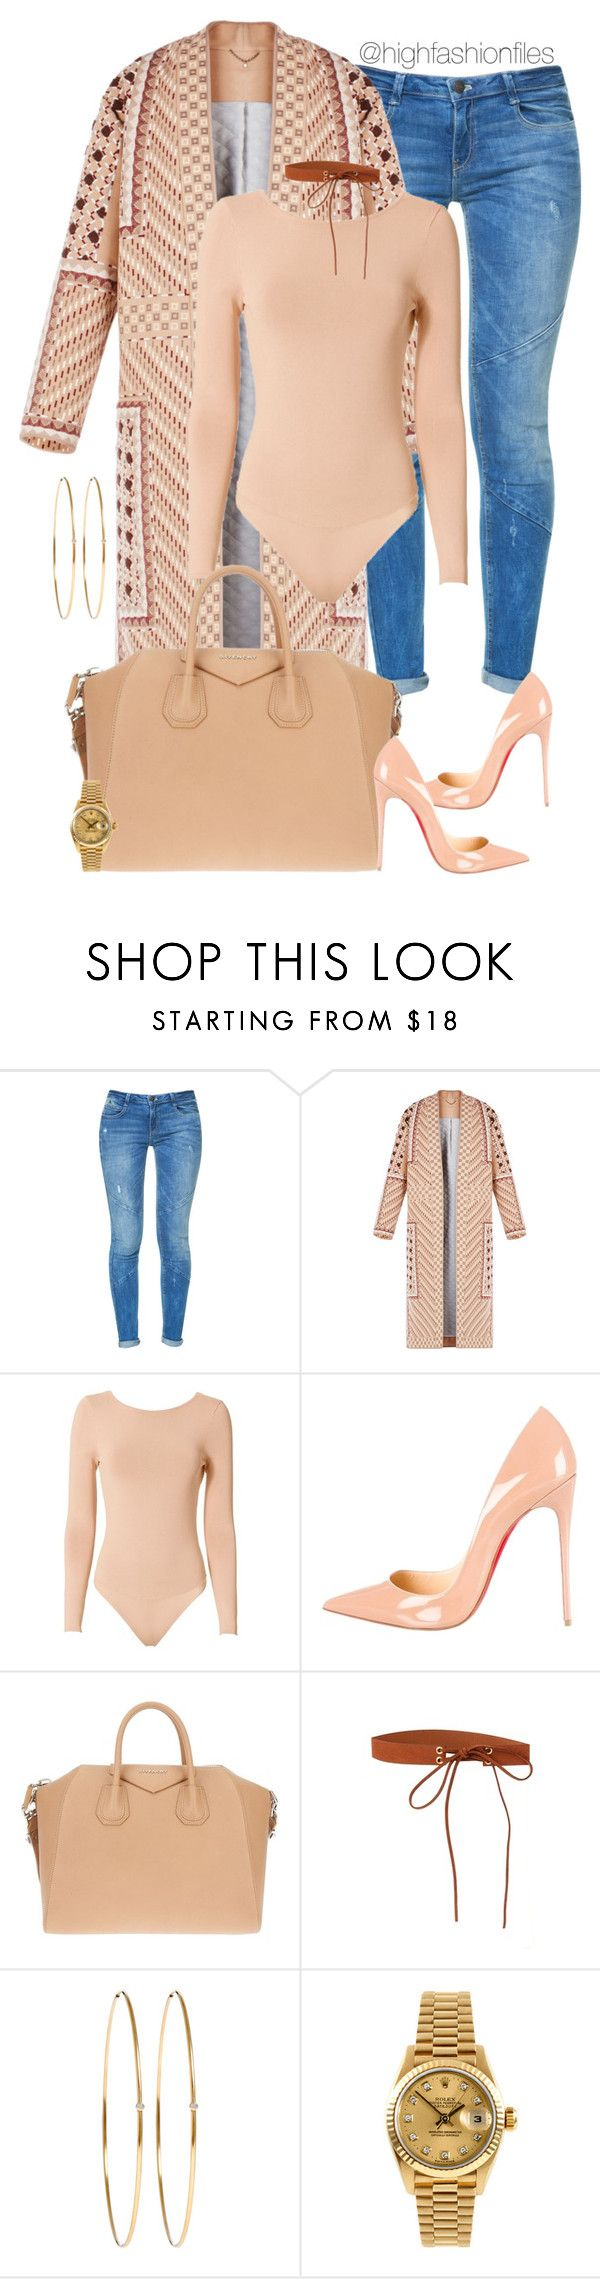 """Untitled #2641"" by highfashionfiles ❤ liked on Polyvore featuring Zara, BCBGMAXAZRIA, Exclusive for Intermix, Christian Louboutin, Givenchy, Jennifer Meyer Jewelry and Rolex"